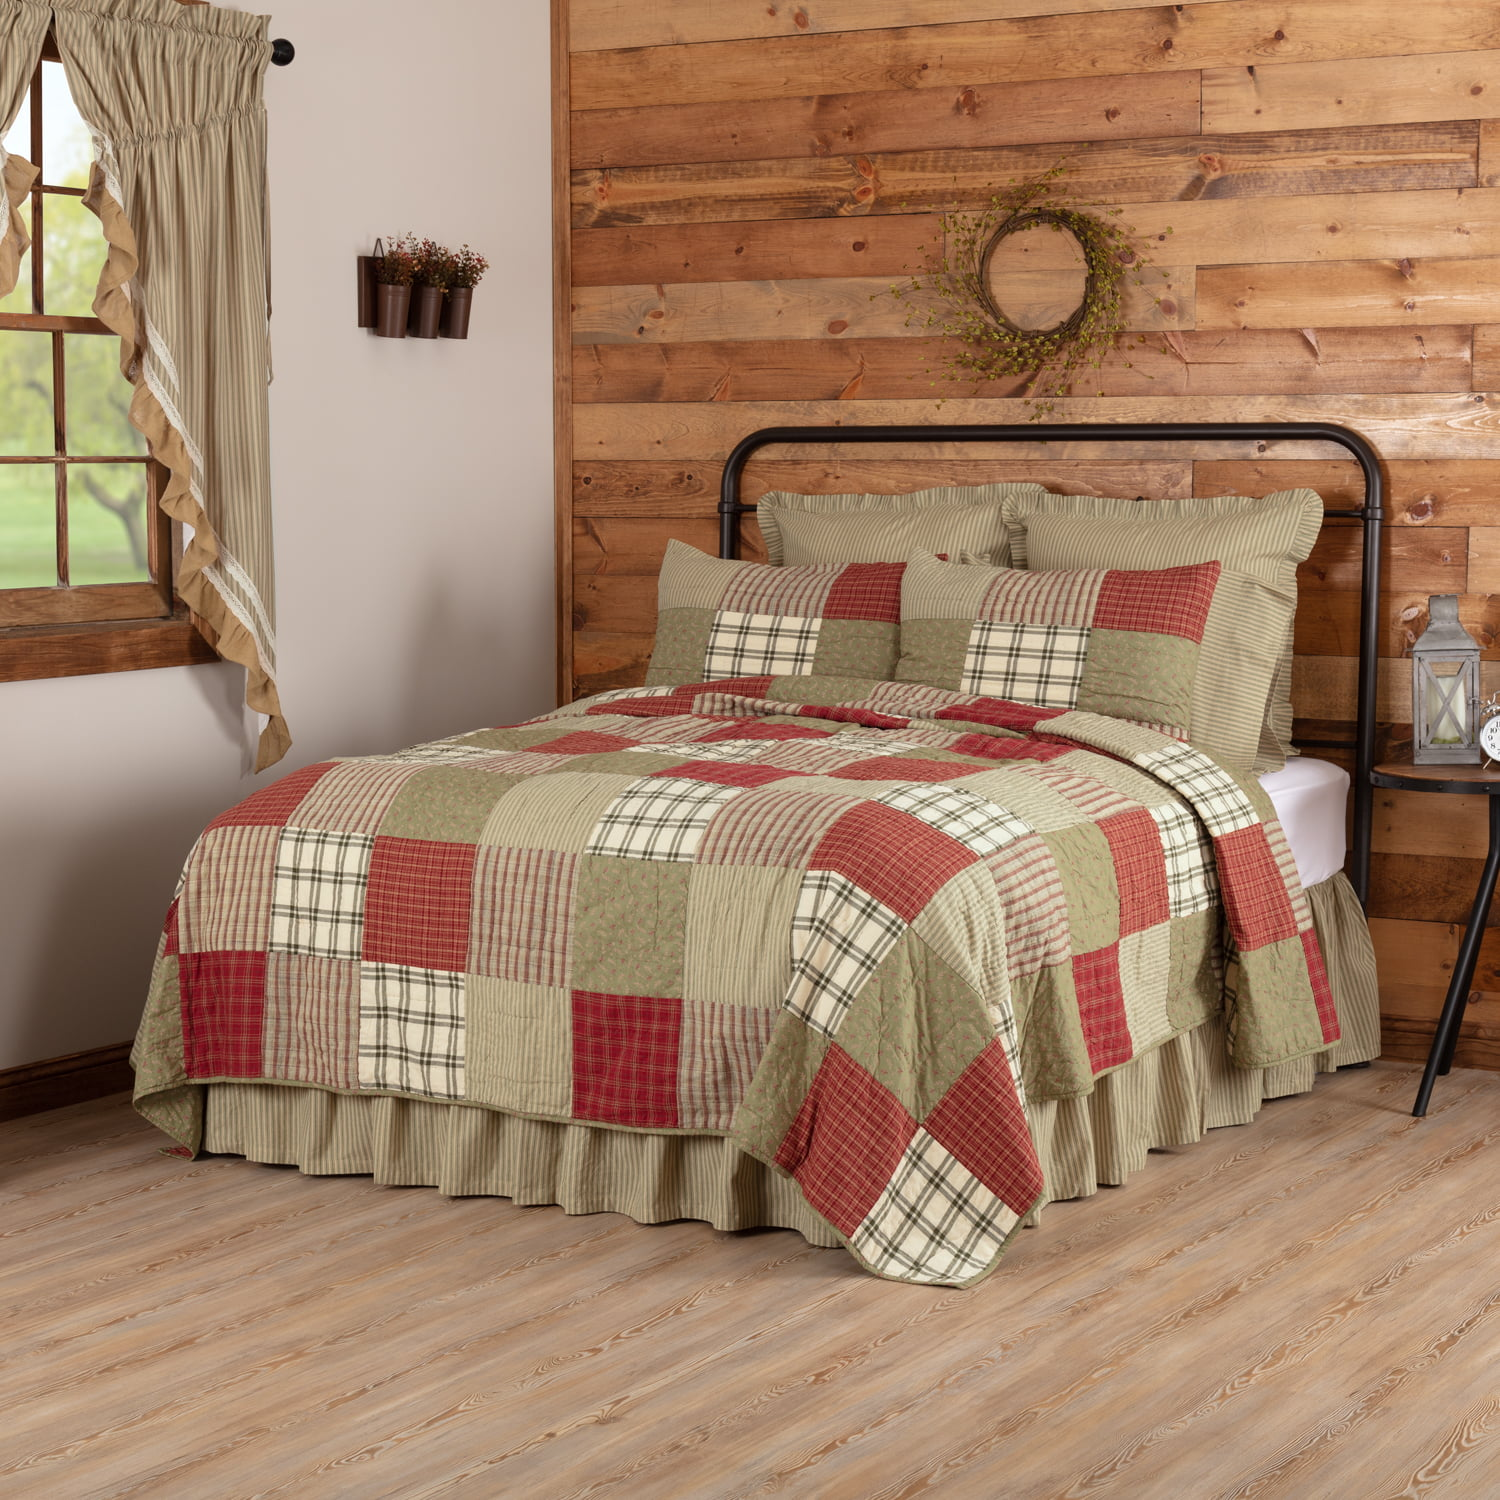 vhc brands brick red farmhouse classic country bedding ...